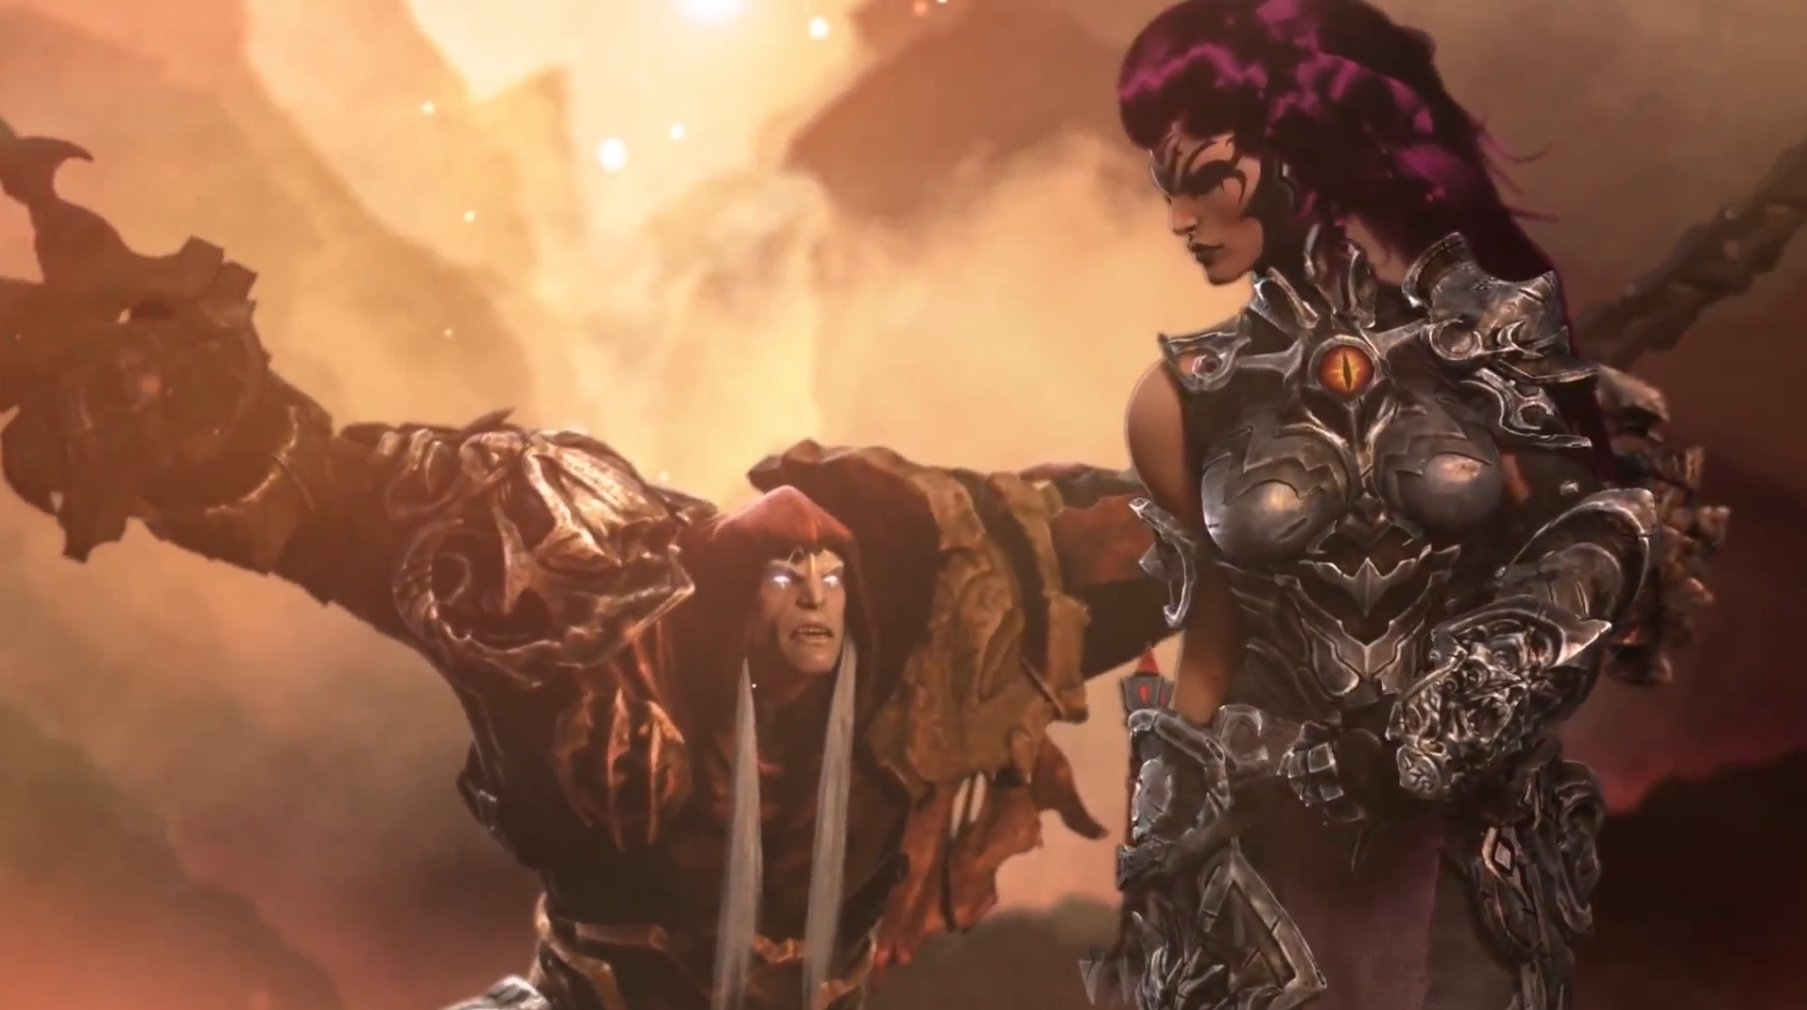 THQ Nordic's Darksiders III Announced